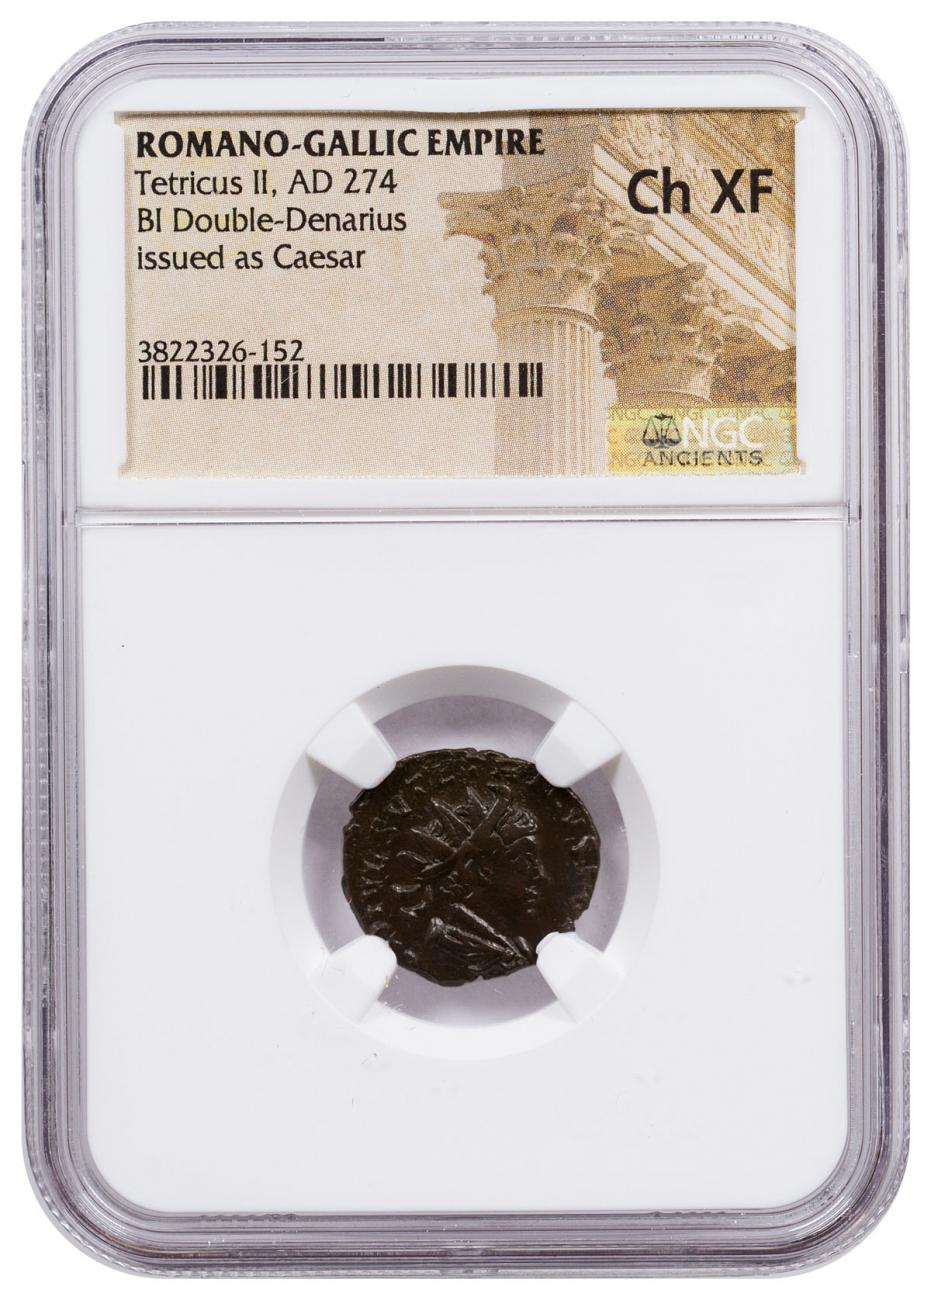 Romano-Gallic Empire, Billon Double Denarius of Tetricus II (AD 274) As Caesar NGC Ch. XF